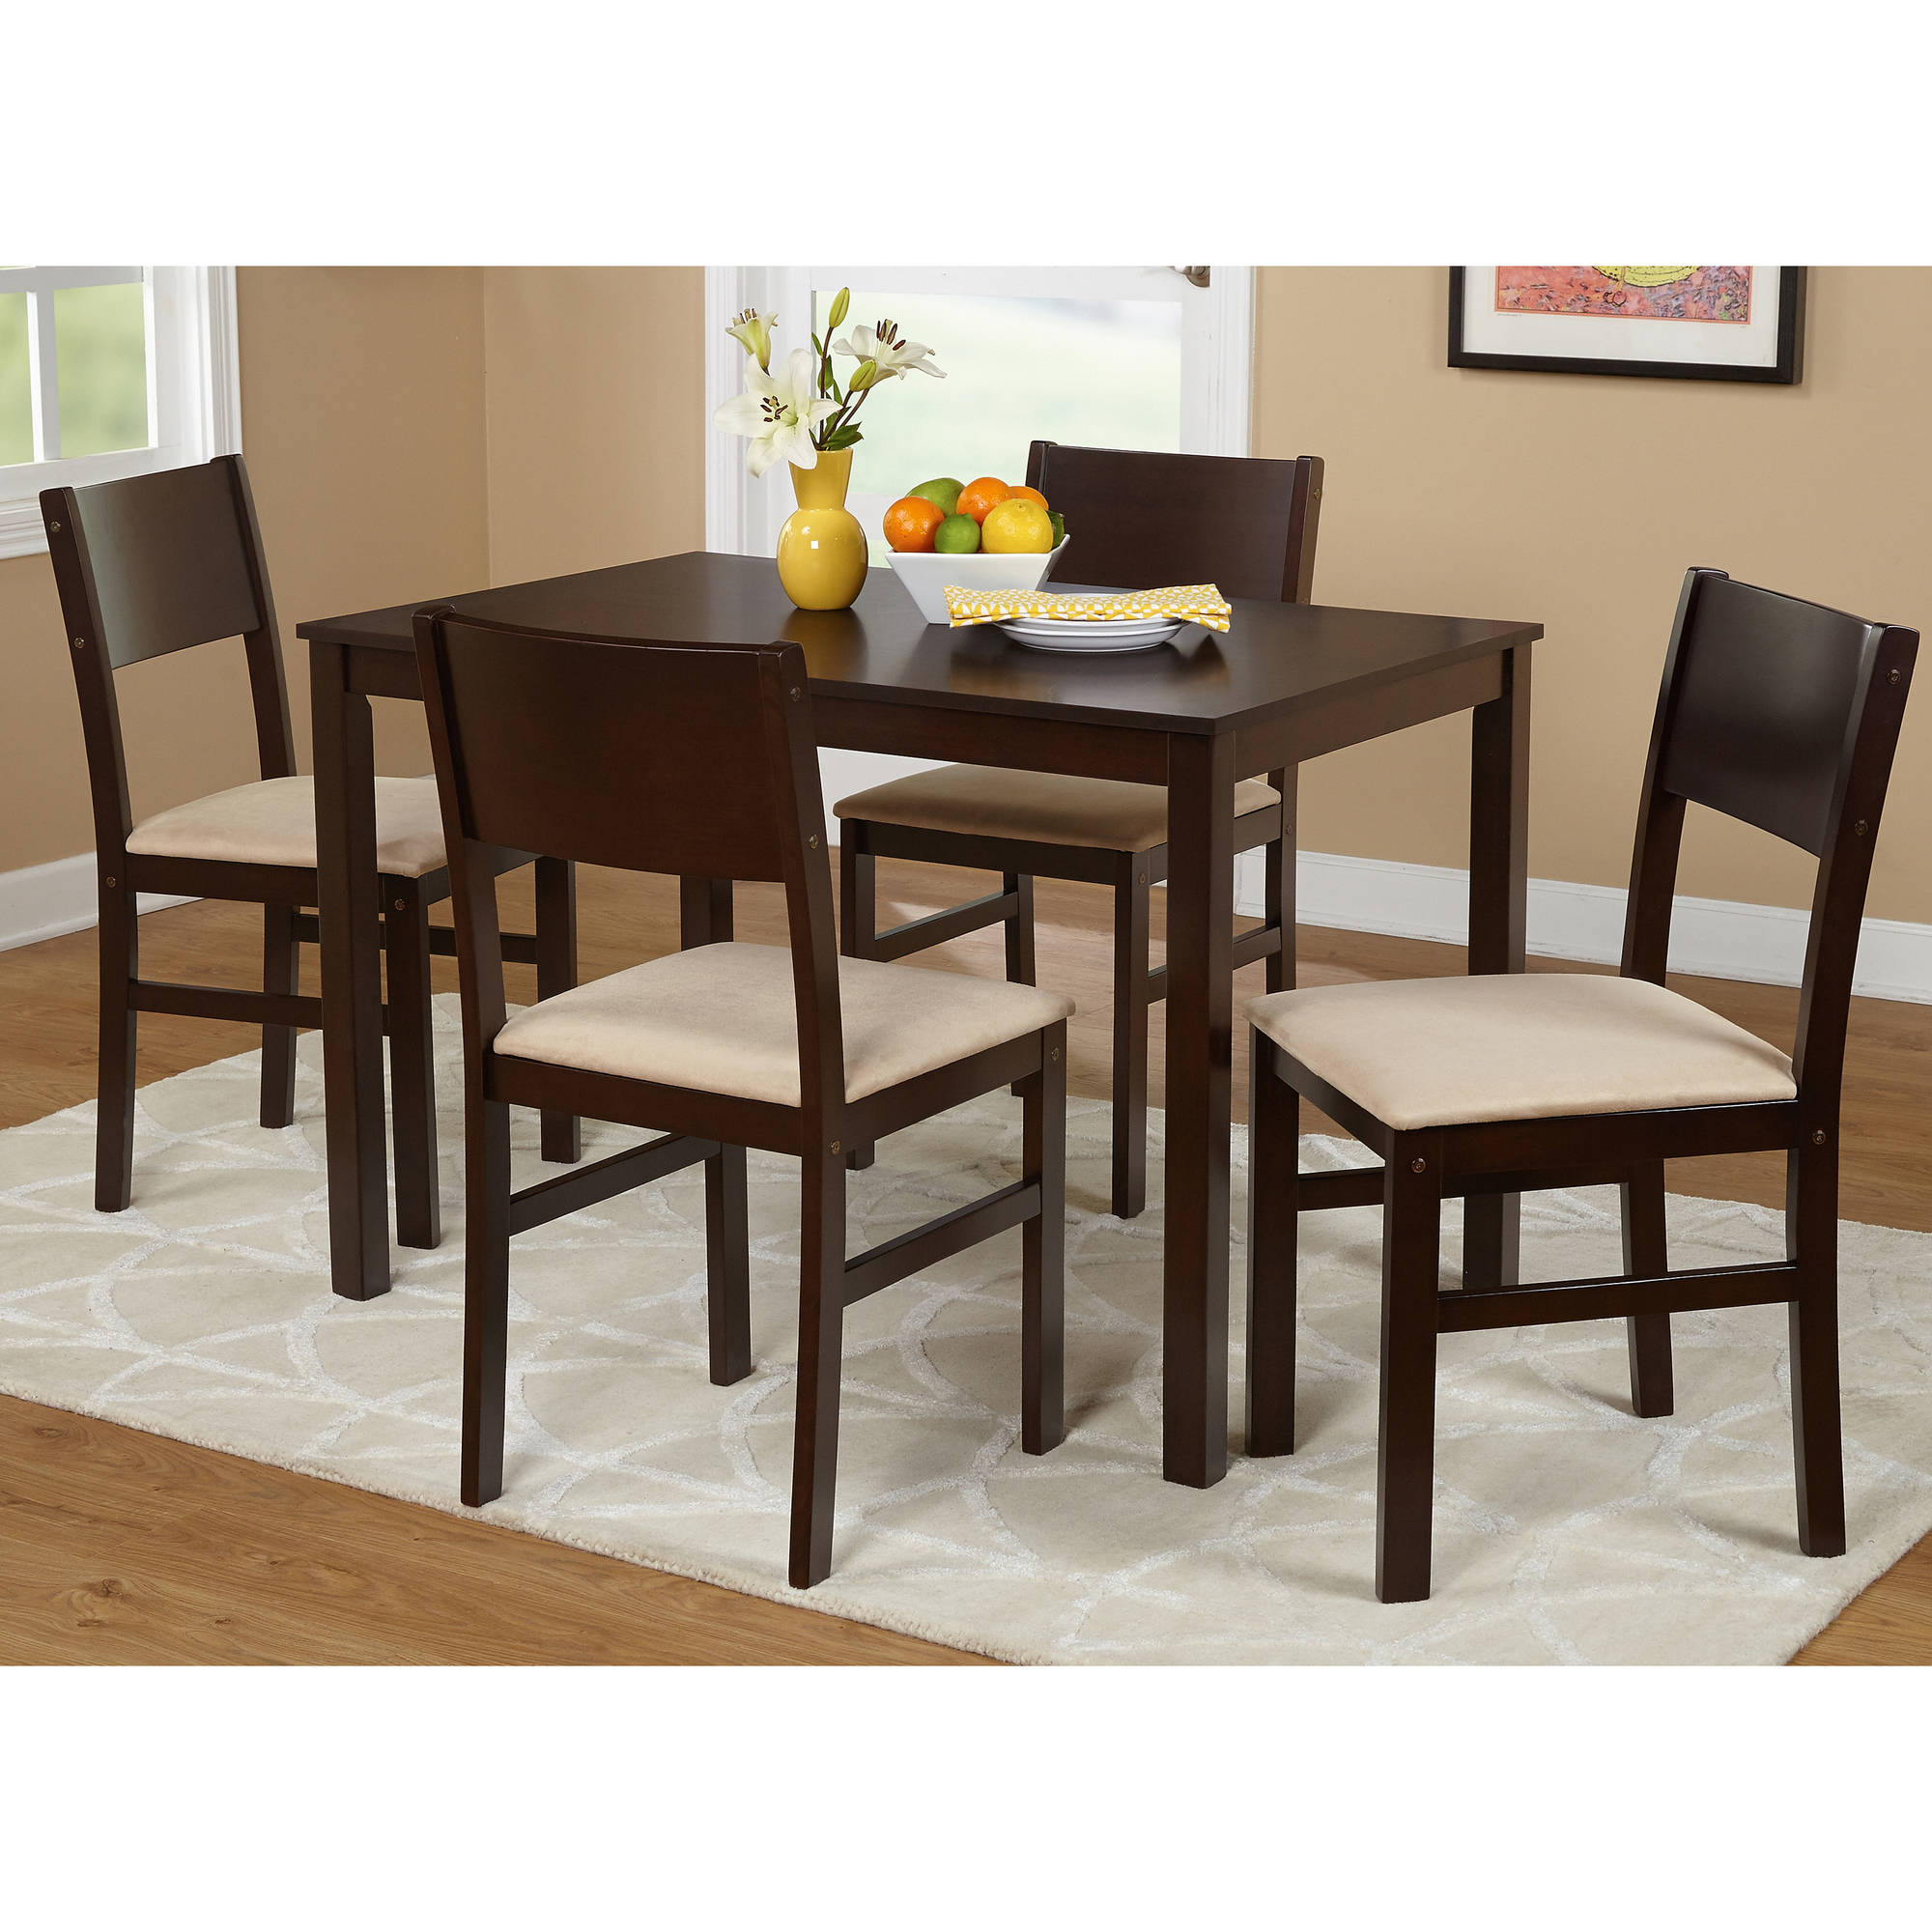 Tms Lucca 5 Piece Dining Set, Multiple Colors – Walmart With Regard To Recent 5 Piece Dining Sets (View 2 of 25)